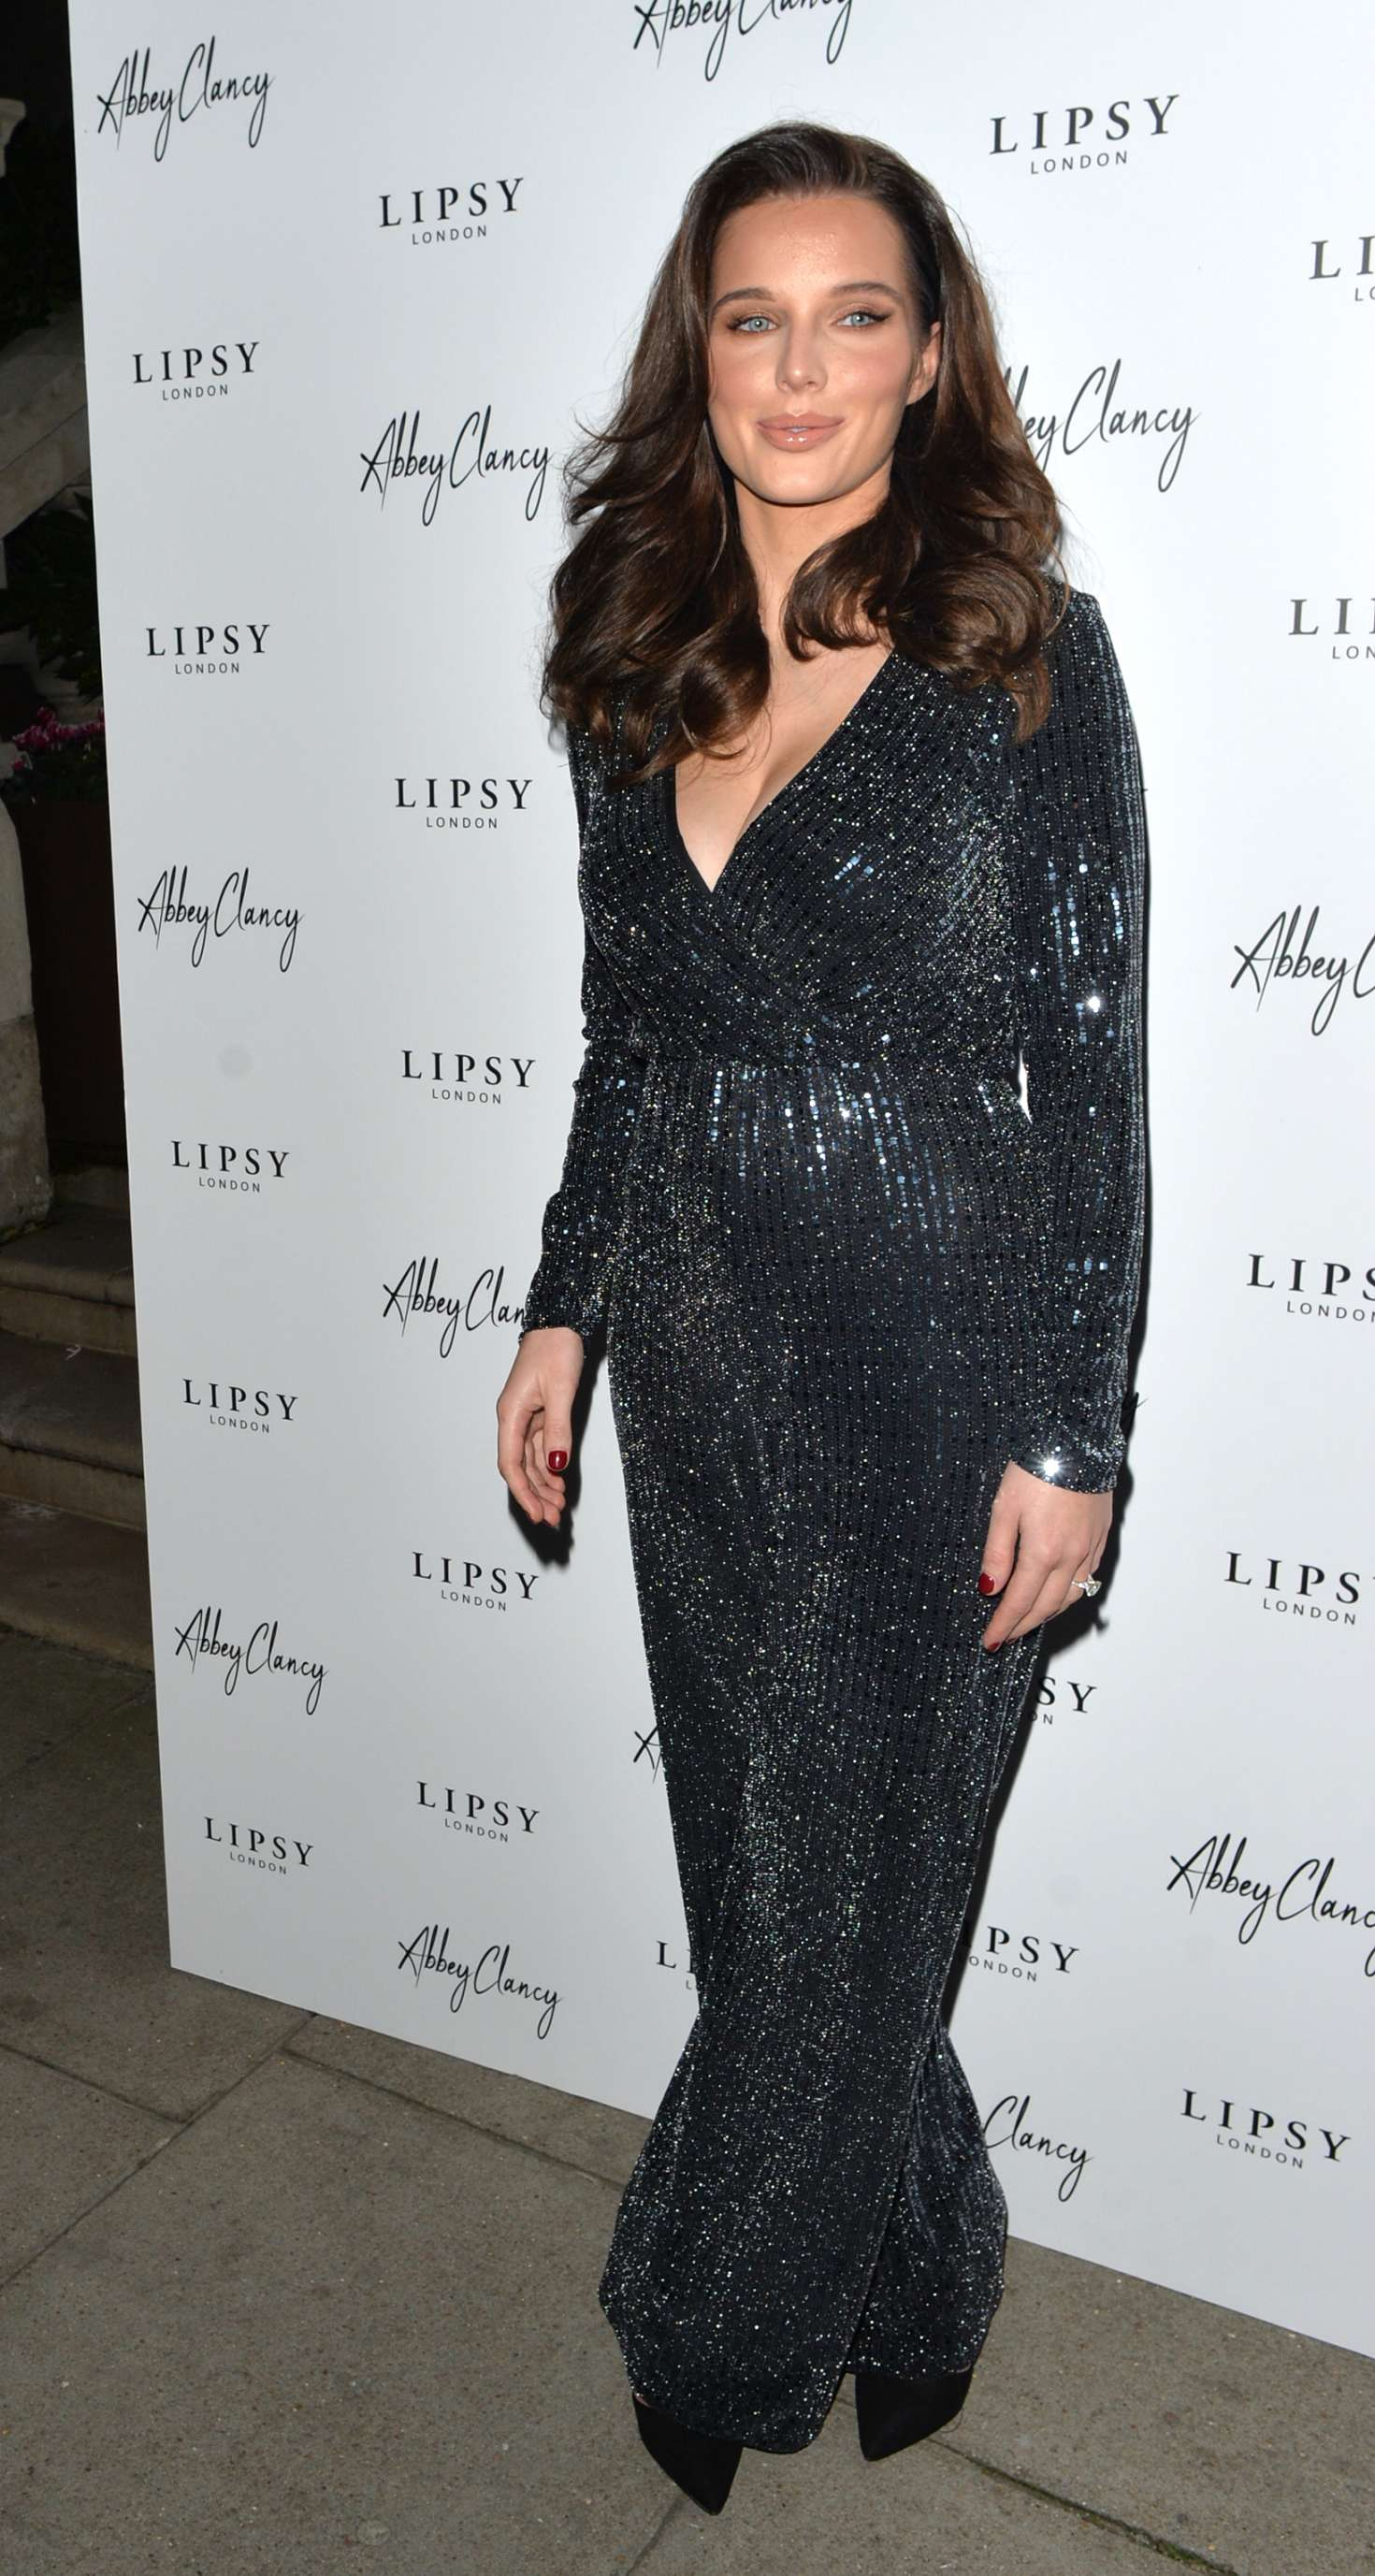 Helen Flanagan - Lipsy x Abbey Clancy Launch in London